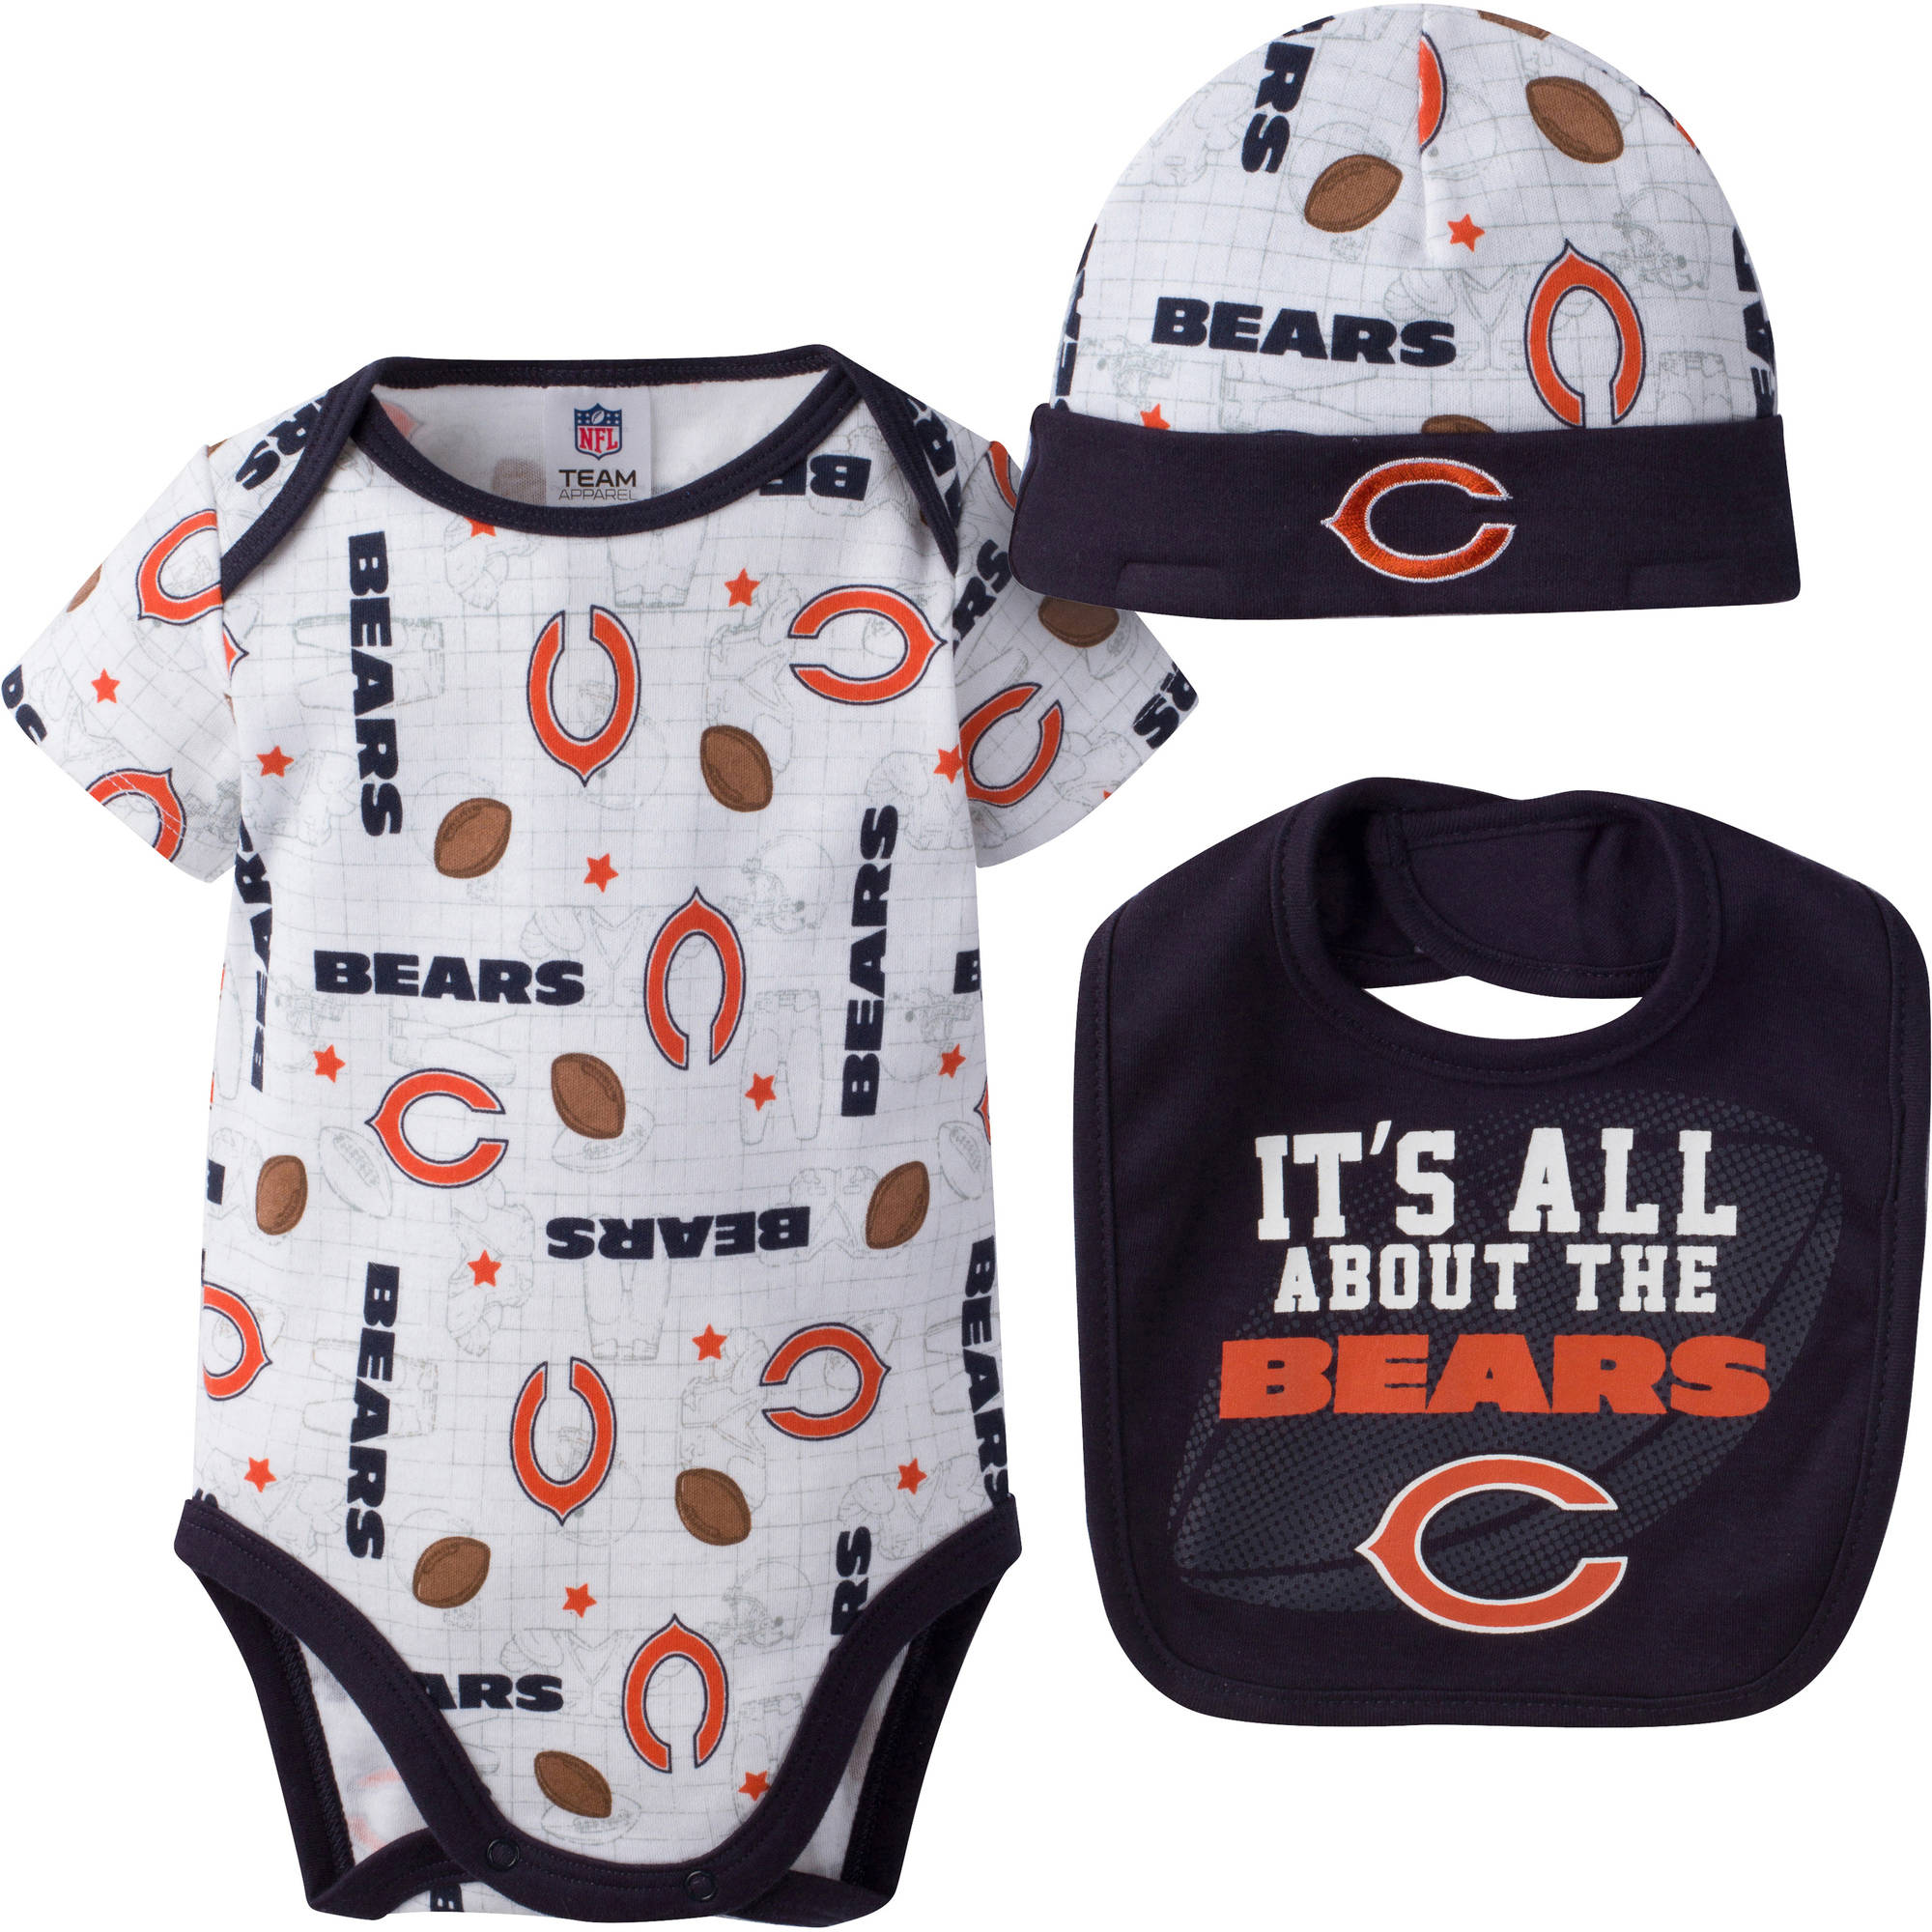 NFL Chicago Bears Baby Boys Bodysuit, Bib and Cap Outfit Set, 3-Piece